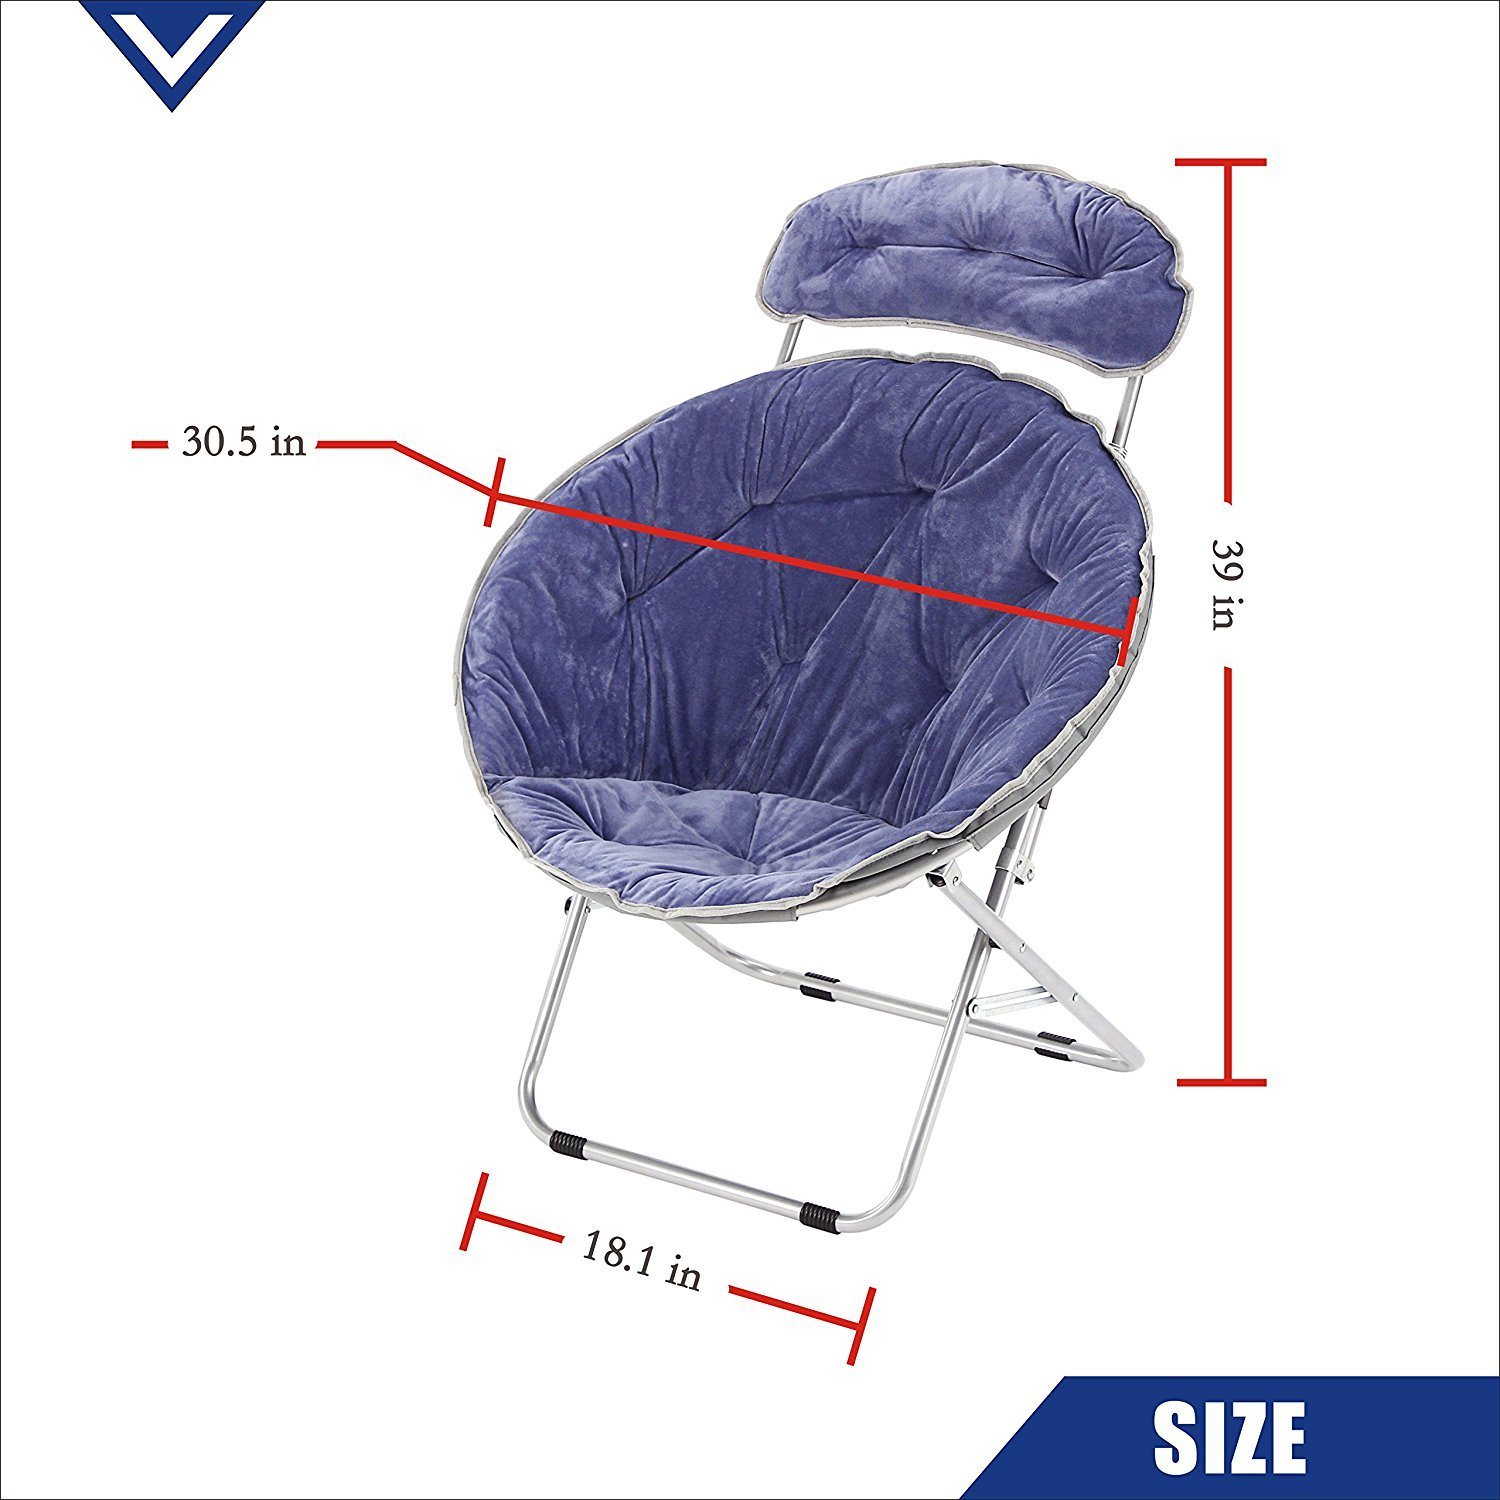 Terrific Campland Deluxe Padded Folding Moon Saucer Chair With Forskolin Free Trial Chair Design Images Forskolin Free Trialorg